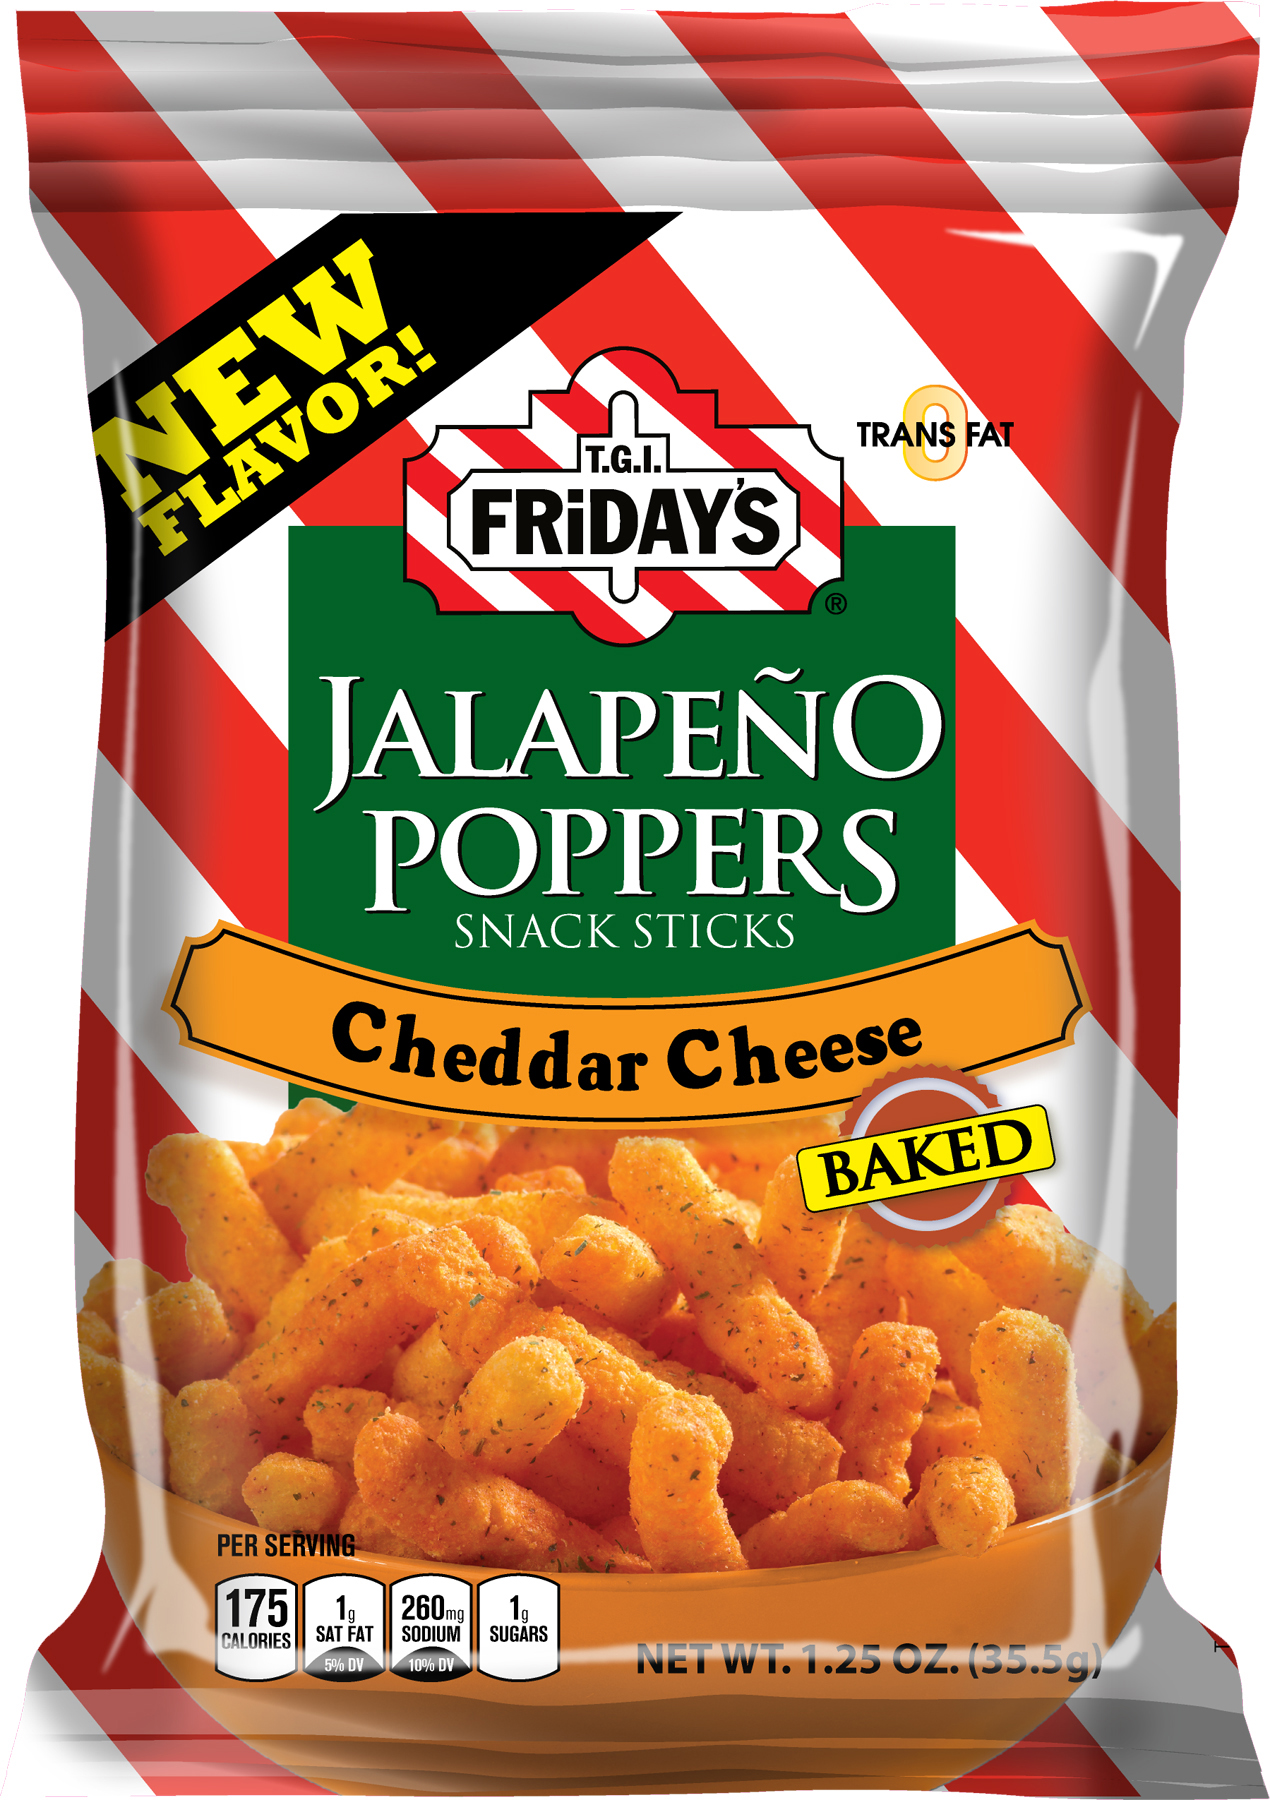 T.G.I. Friday's Jalapeno Poppers Cheddar Cheese (35.5g)-0